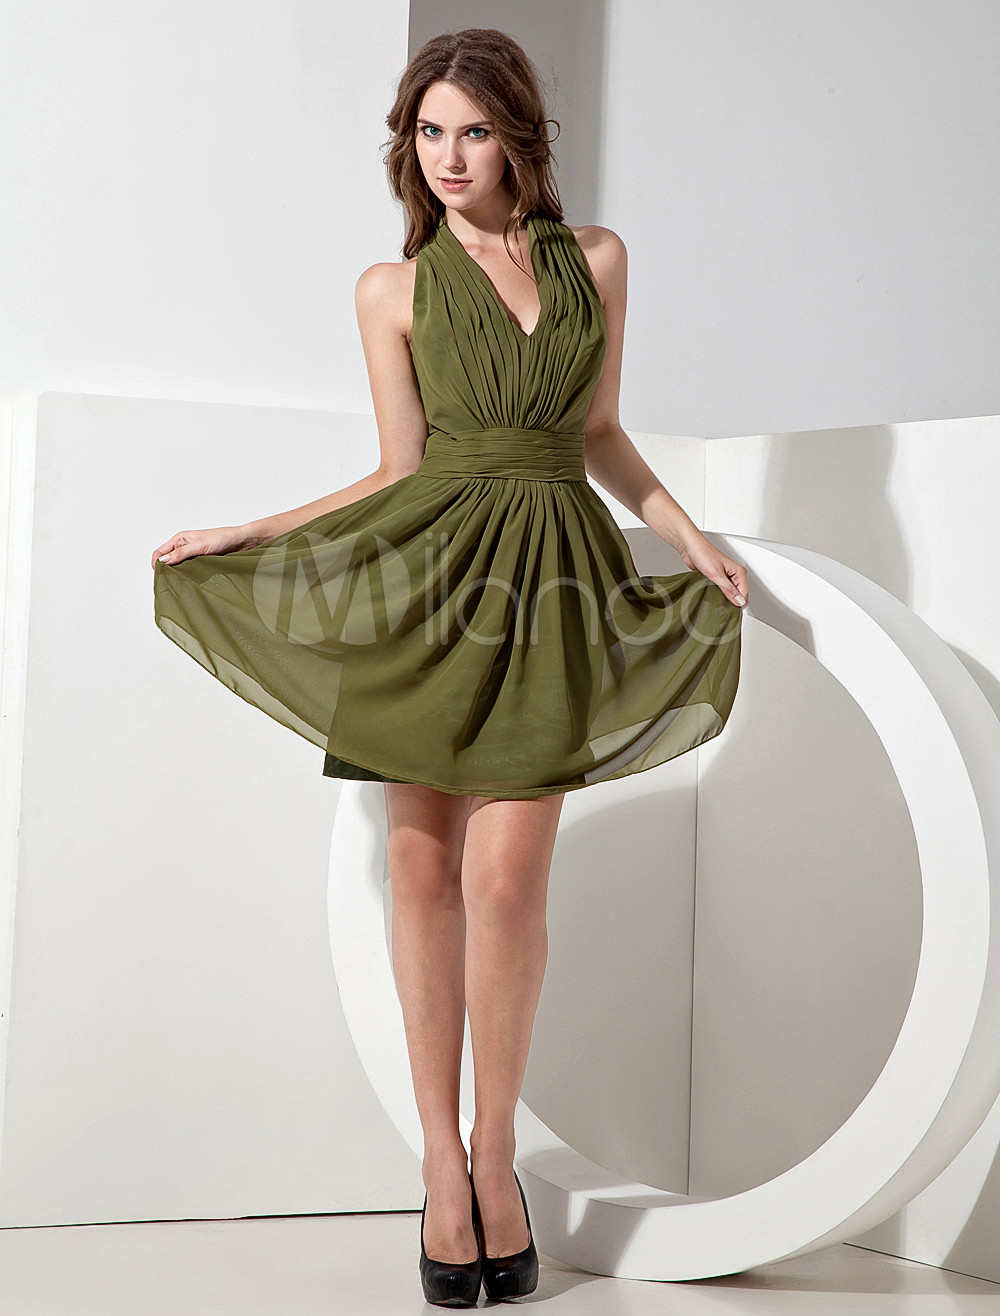 Hunter Green Chiffon Knee Length Halter A-line Bridesmaid Dress